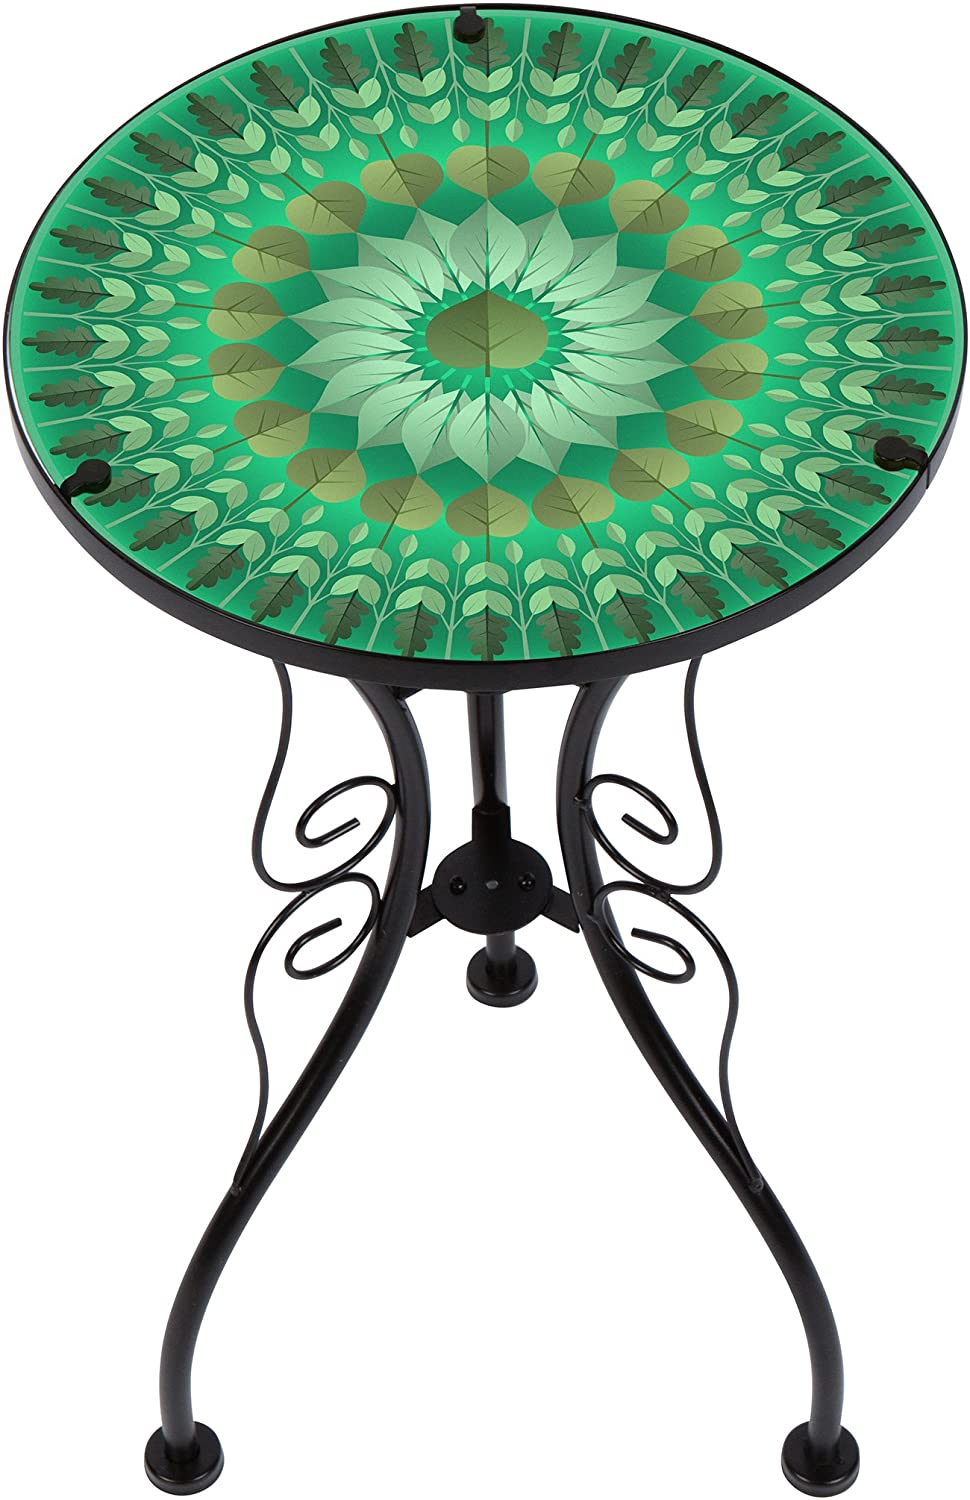 22 Peacock Design Glass /& Metal Side Table by Trademark Innovations